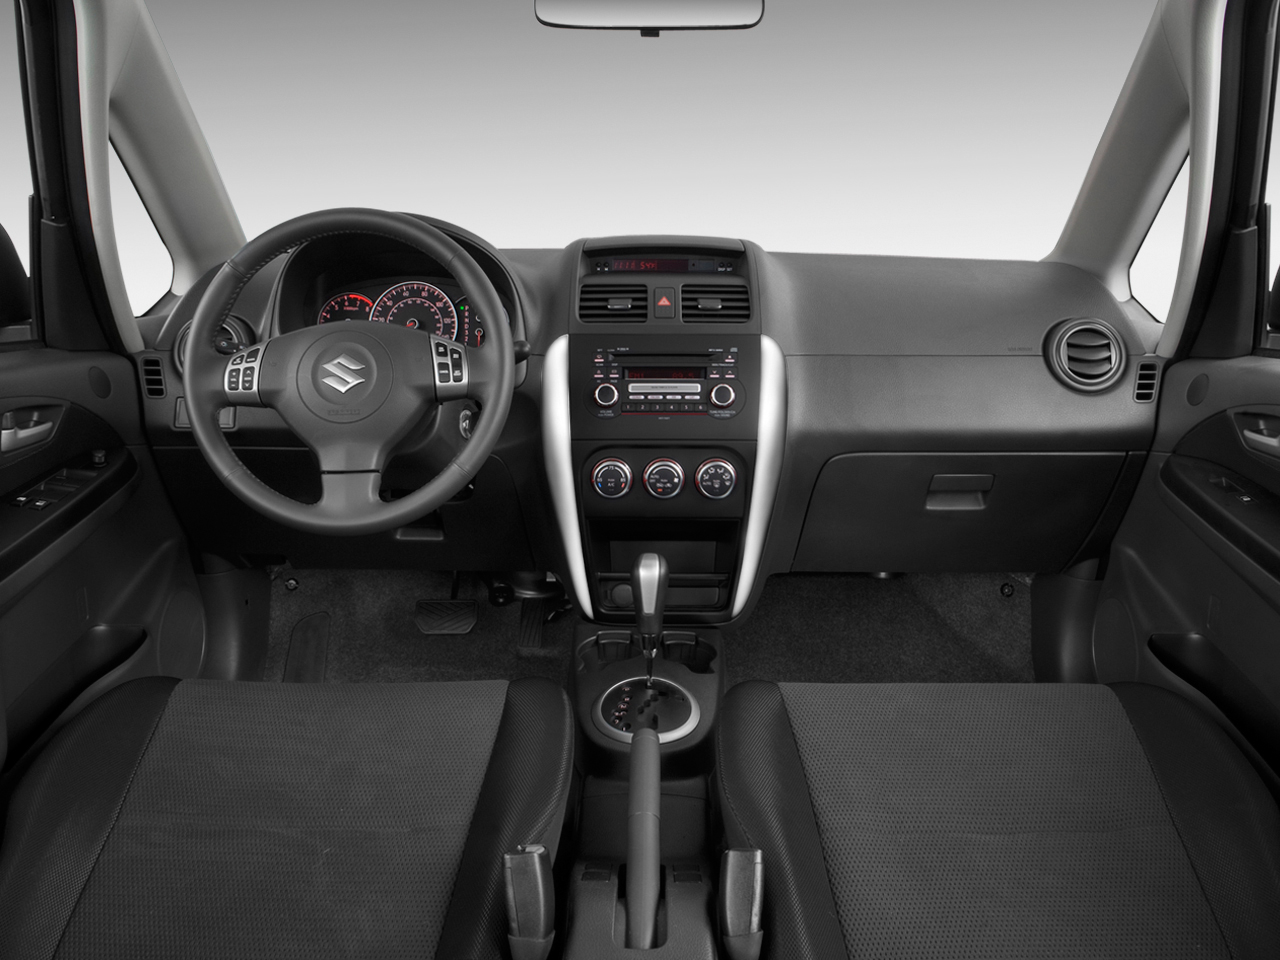 Suzuki SX4 Sedan Interior